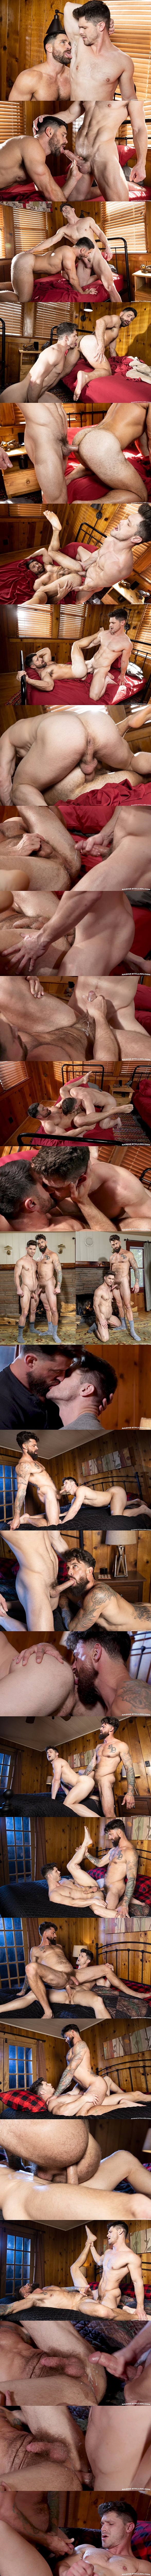 Ragingstallion - popular gay porn star Devin Franco barebacks and breeds sexy hairy muscle stud Beau Butler and inked daddy Alpha Wolfe in Mountain Tops 02